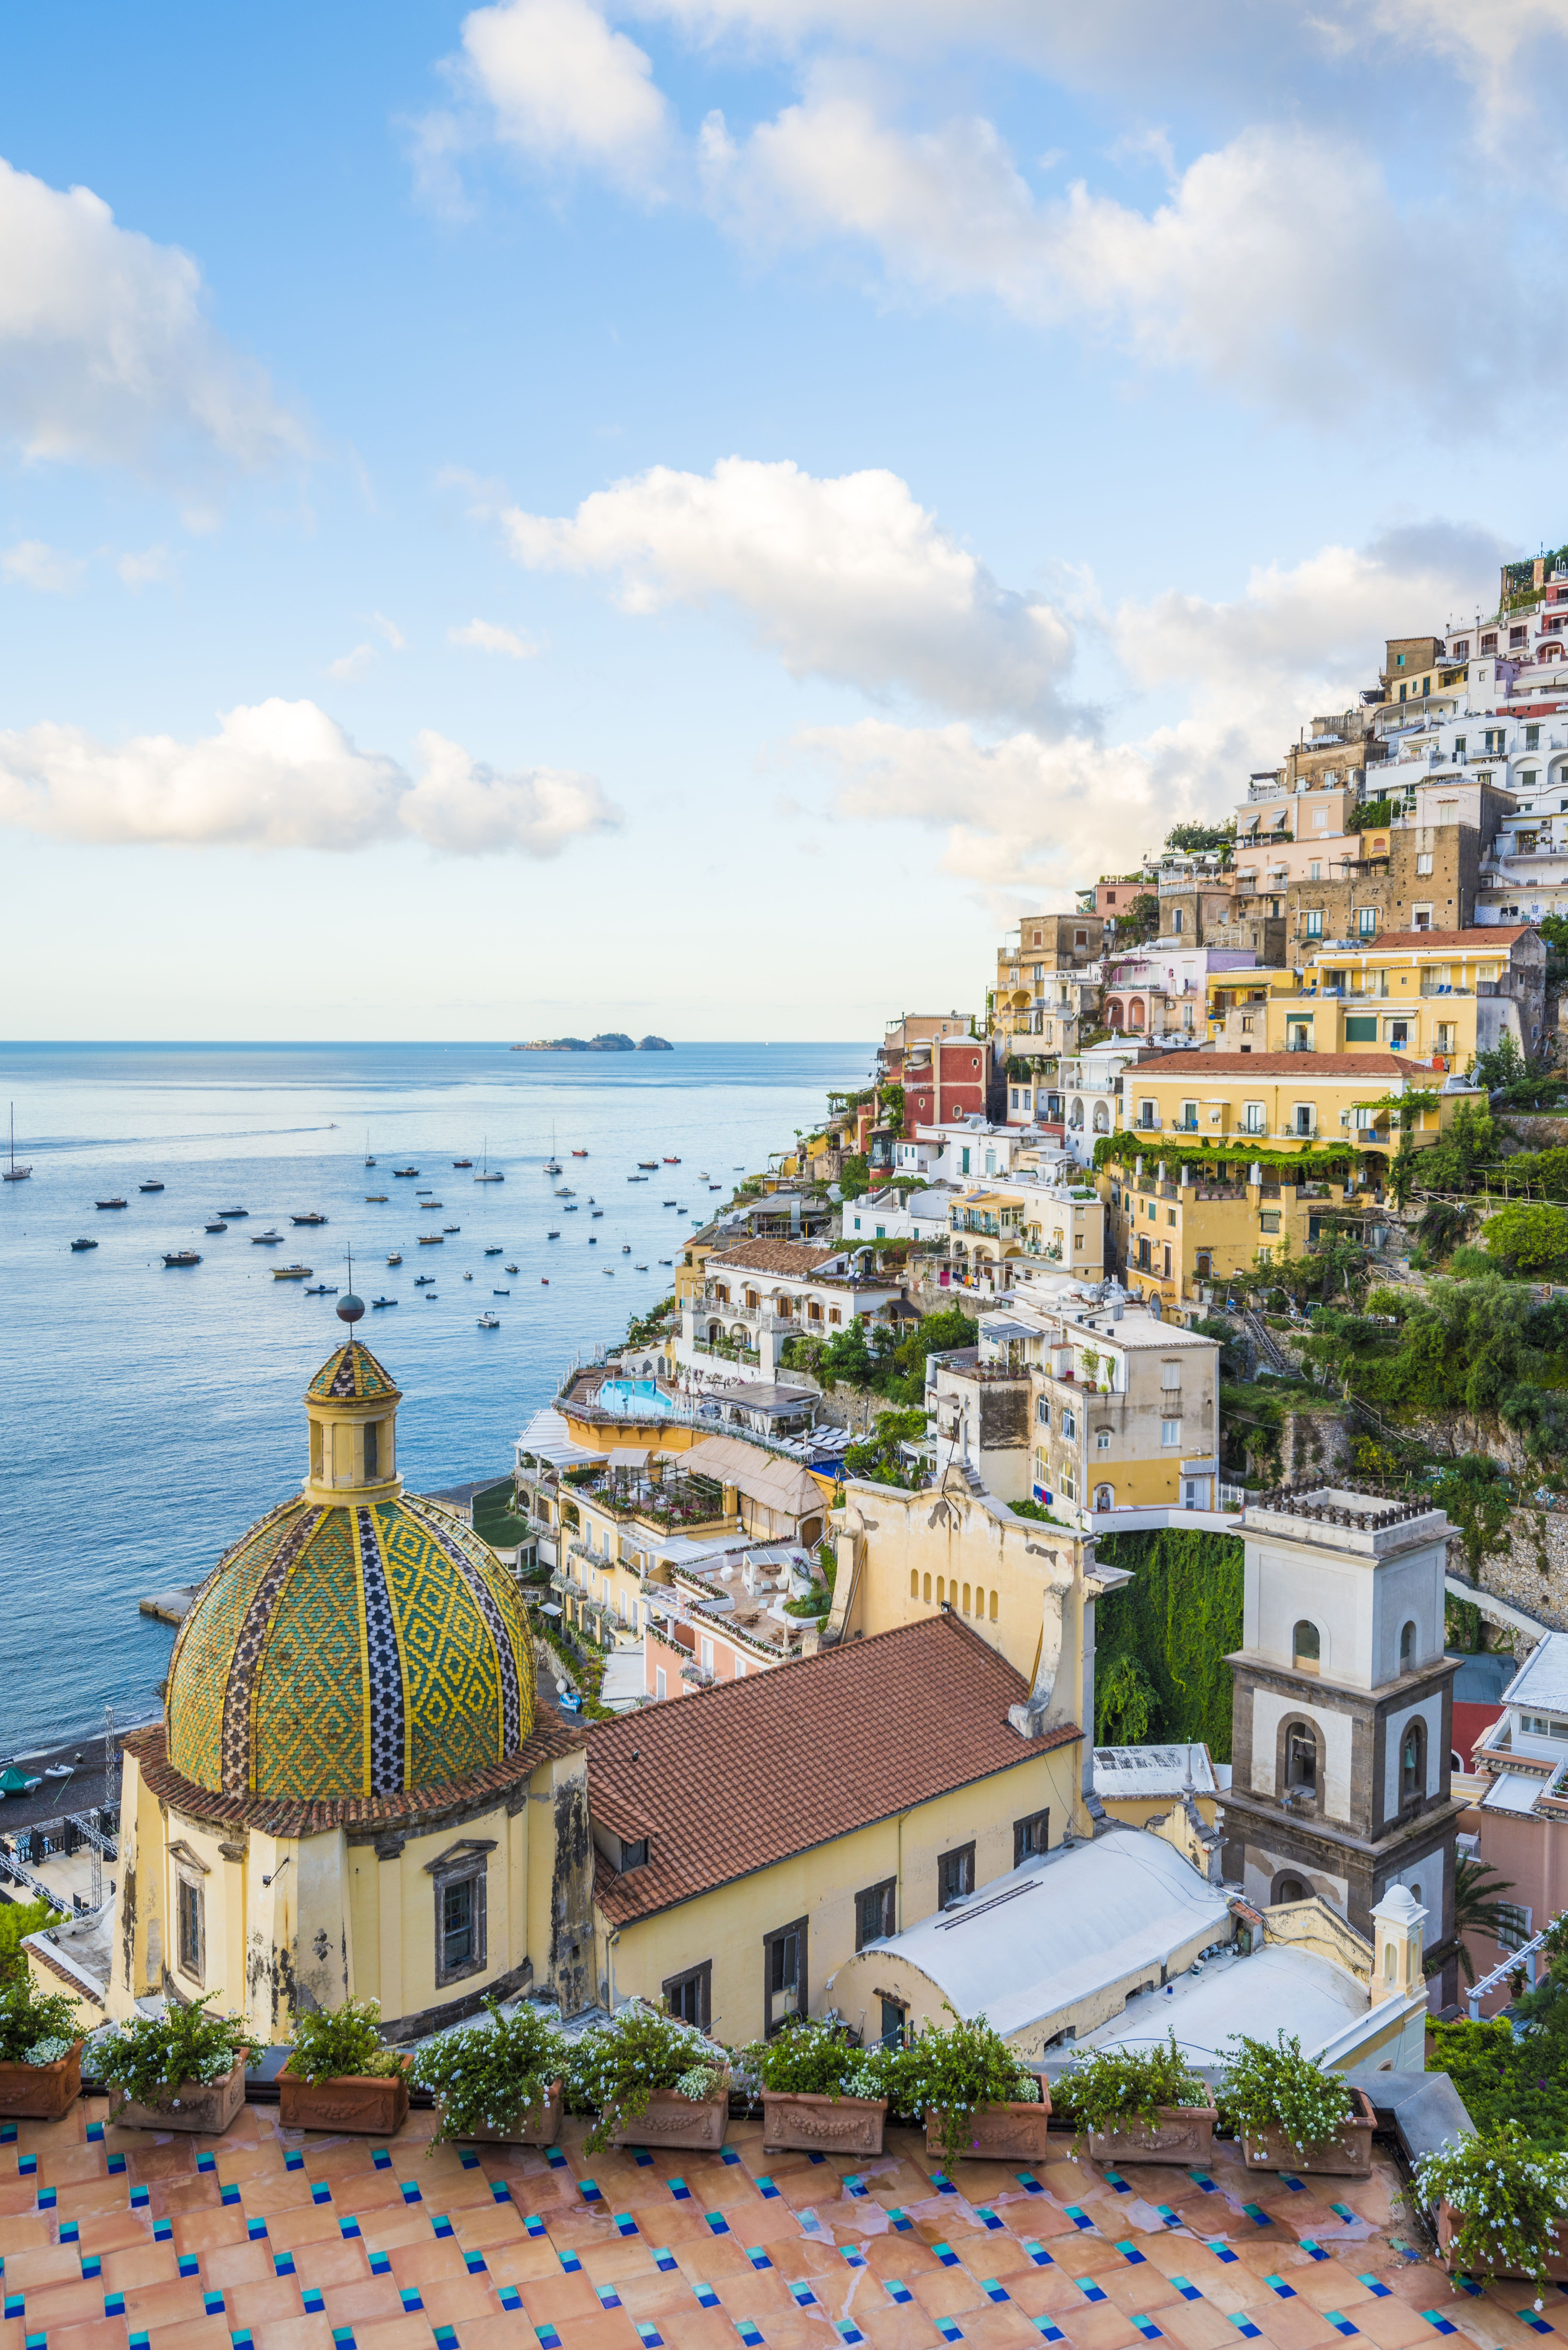 Reasons to visit the Amalfi coast